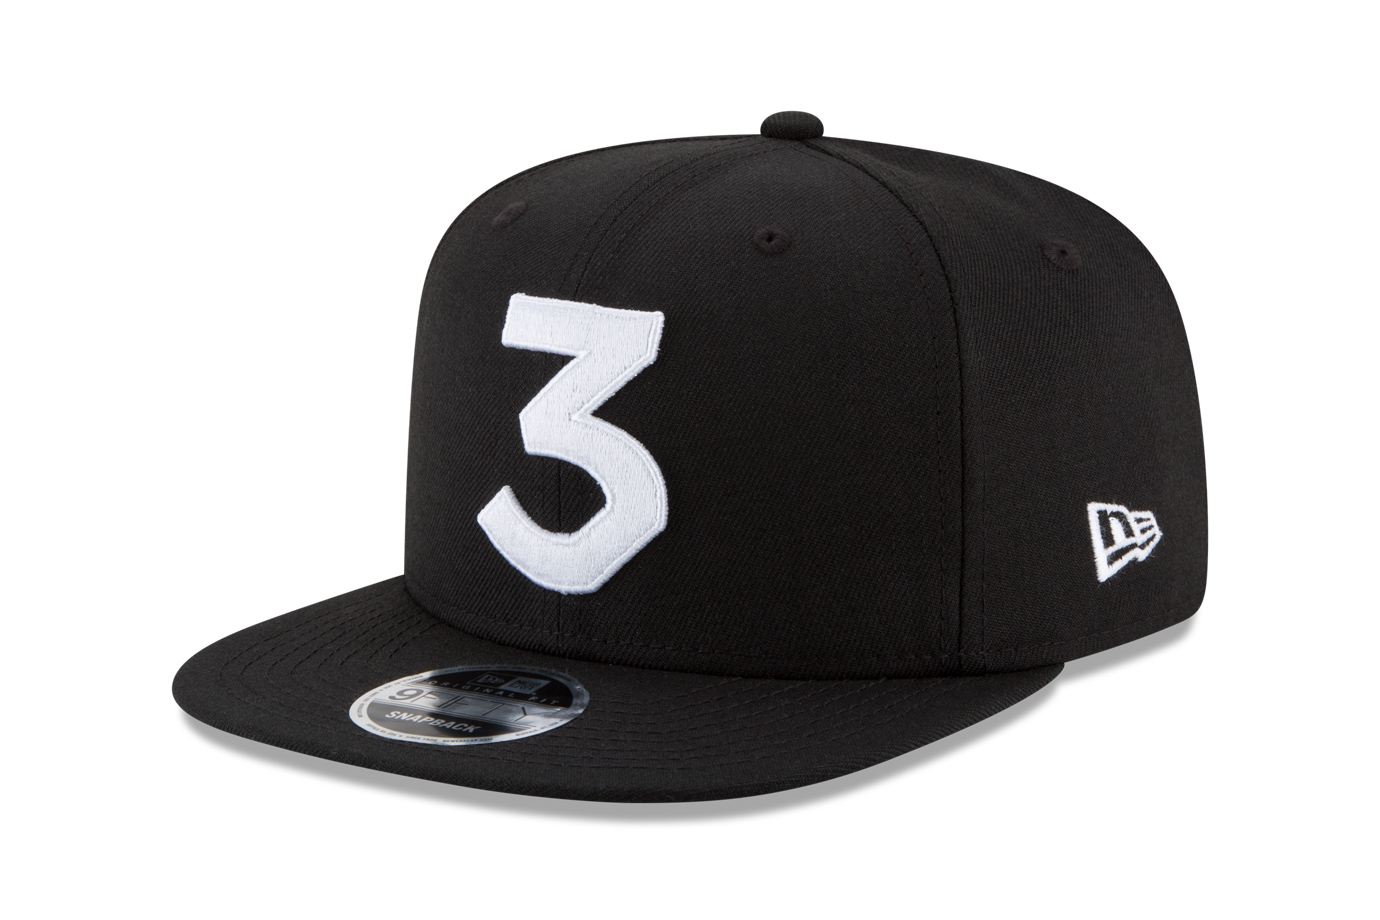 Chance The Rapper Releases His Signature New Era 3 Hat